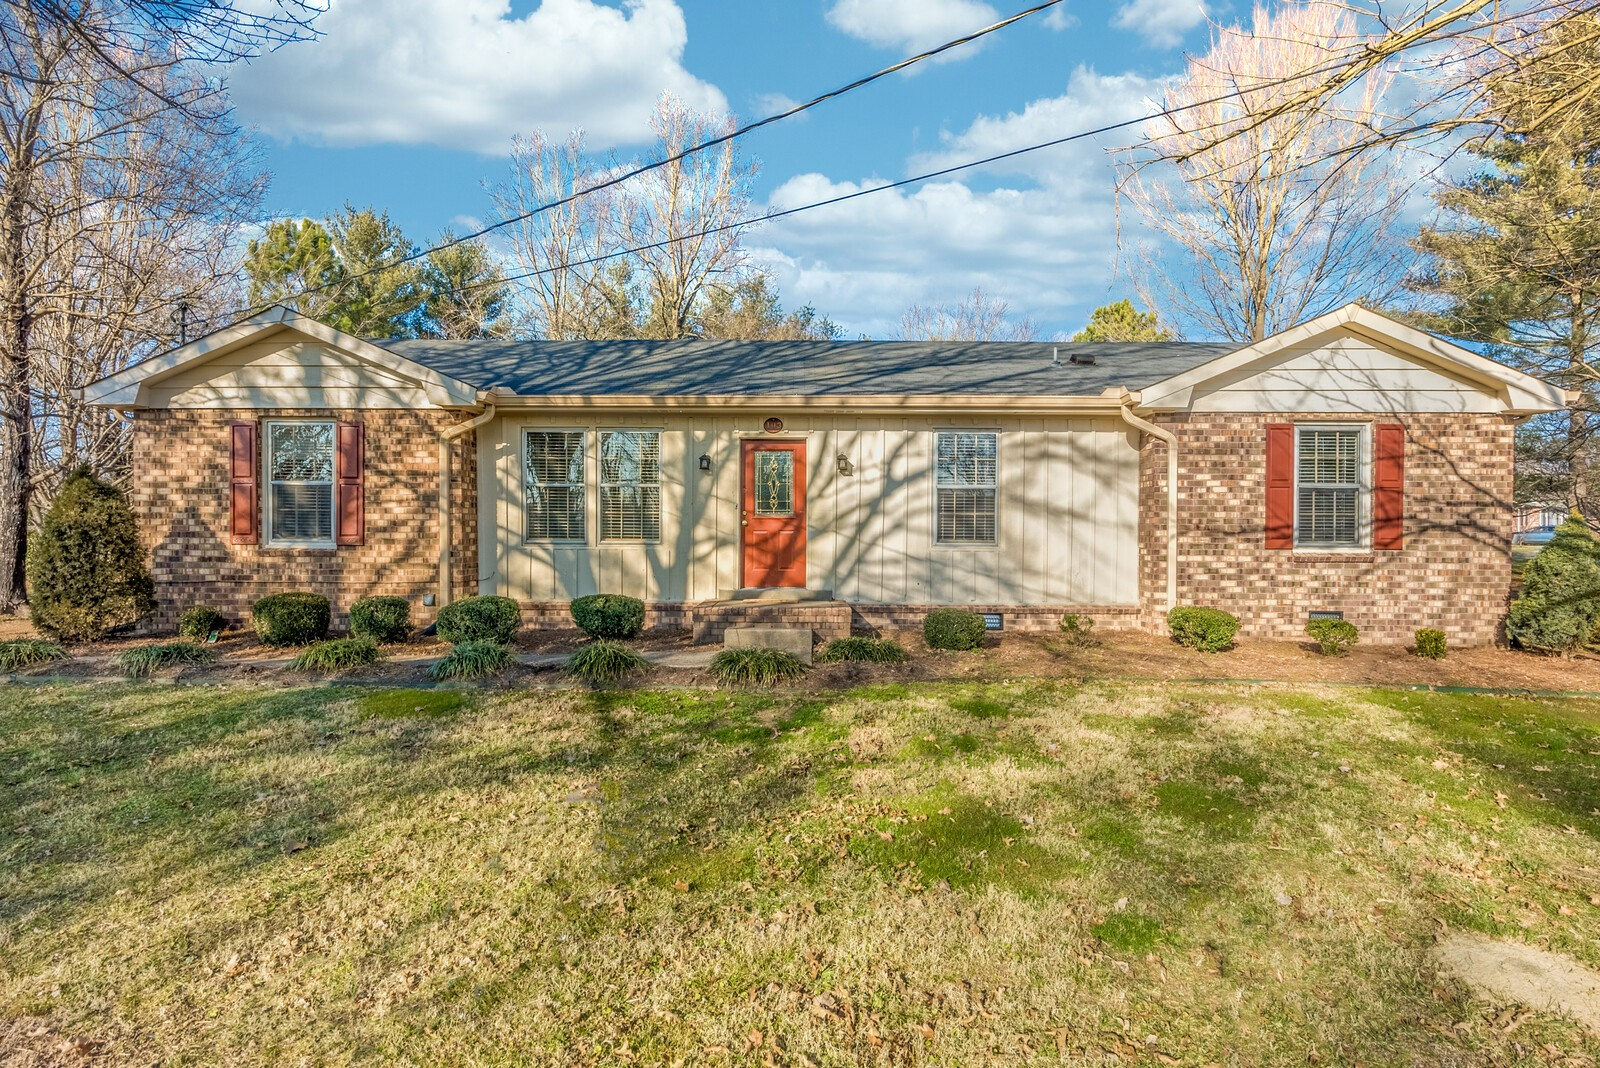 Convenient location just seconds to Glenbrook Shopping Center and Vietnam Veterans Blvd. Well maintained home with new flooring and fresh paint throughout, updated bath and new granite countertops. Beautiful brick paver patio overlooking park-like backyard.